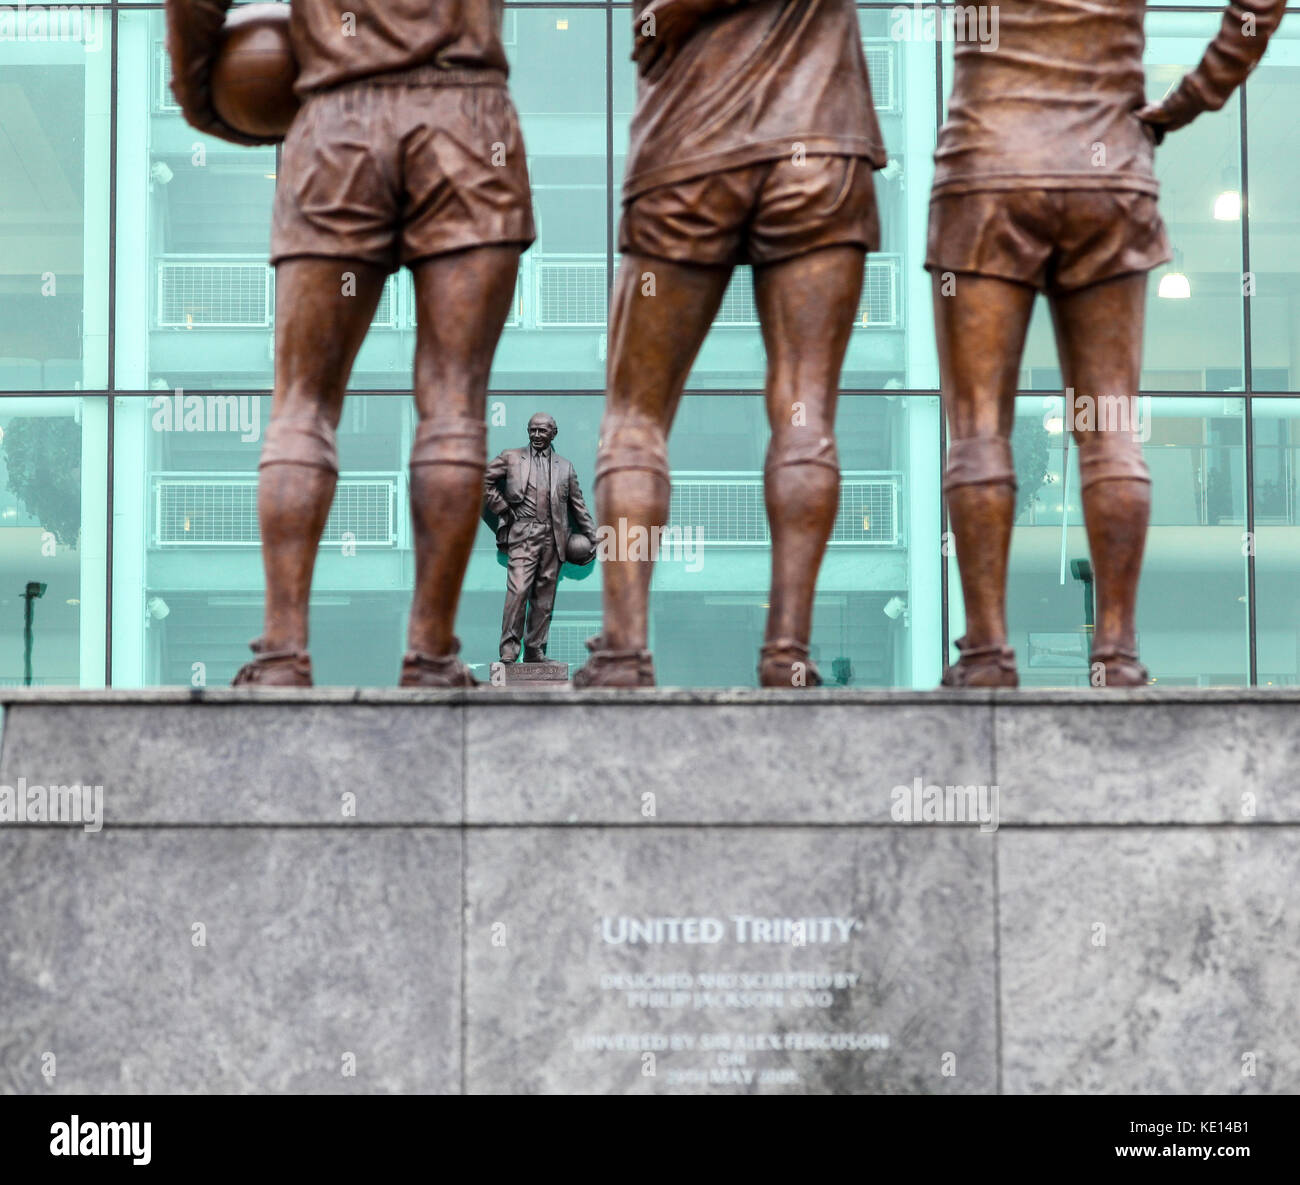 United Trinity statue outside Manchester United Football Club home ground Old Trafford, Manchester, England, United - Stock Image